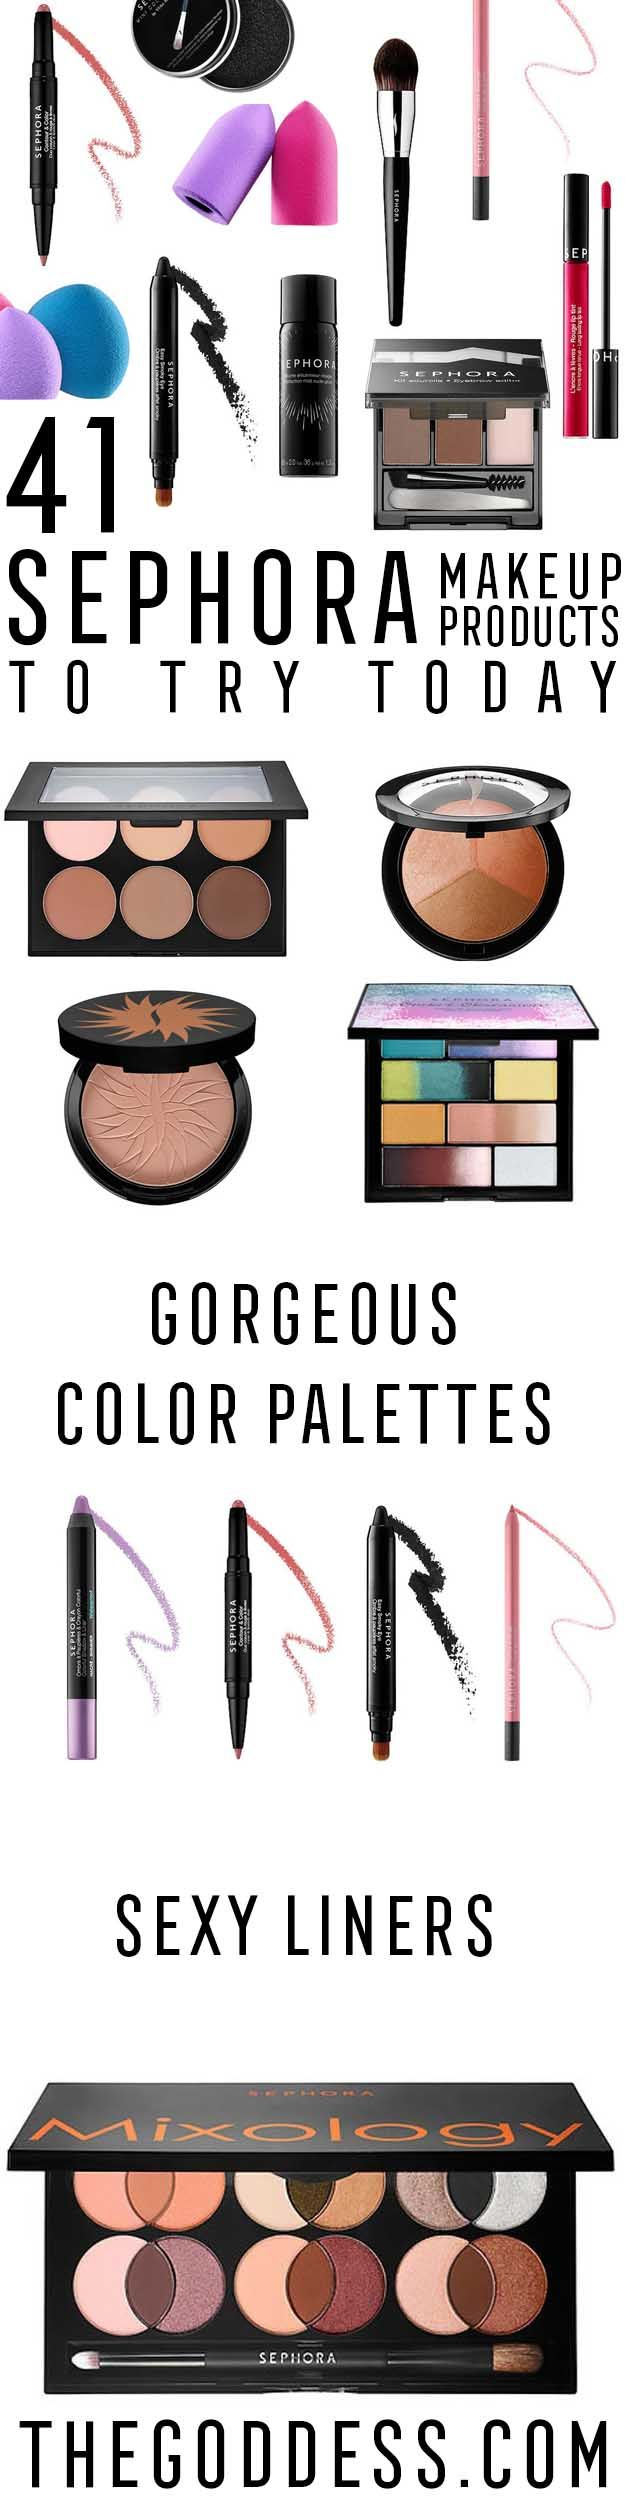 Sephora Makeup Products To Try Today - These Are The Best Sephora Makeup Product...